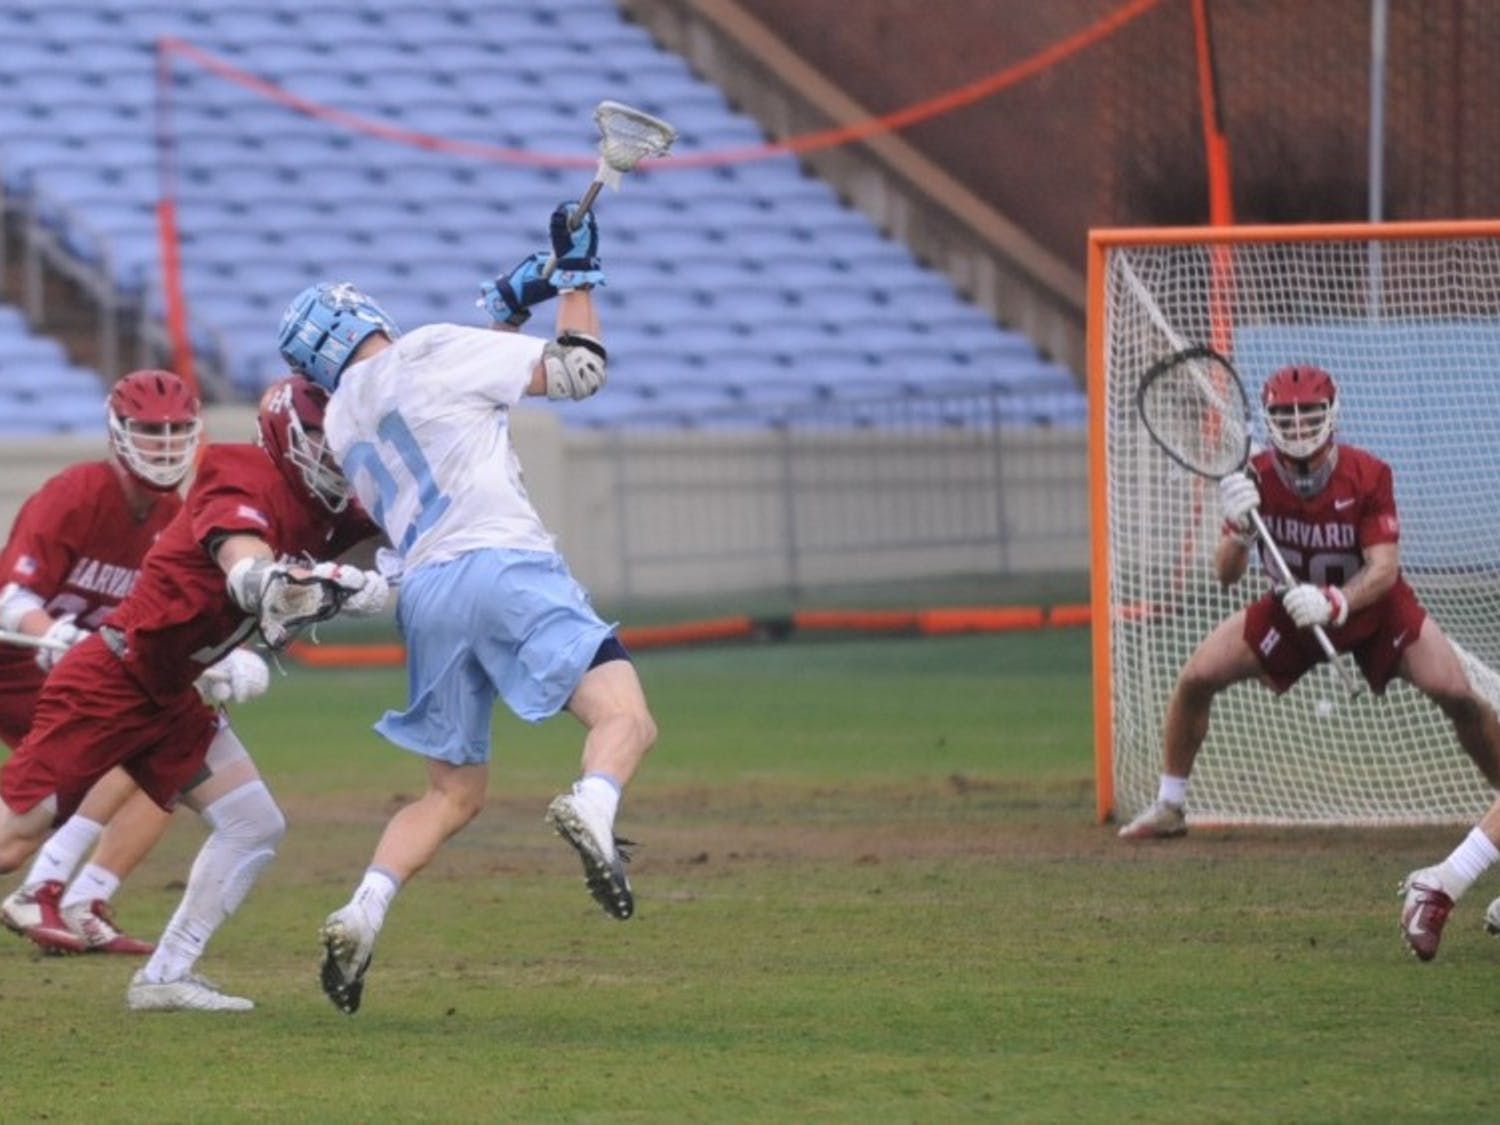 Midfielder Justin Anderson (21) shoots during the game against Harvard in Kenan Stadium on Saturday, Feb. 16, 2019. UNC won 16-11.